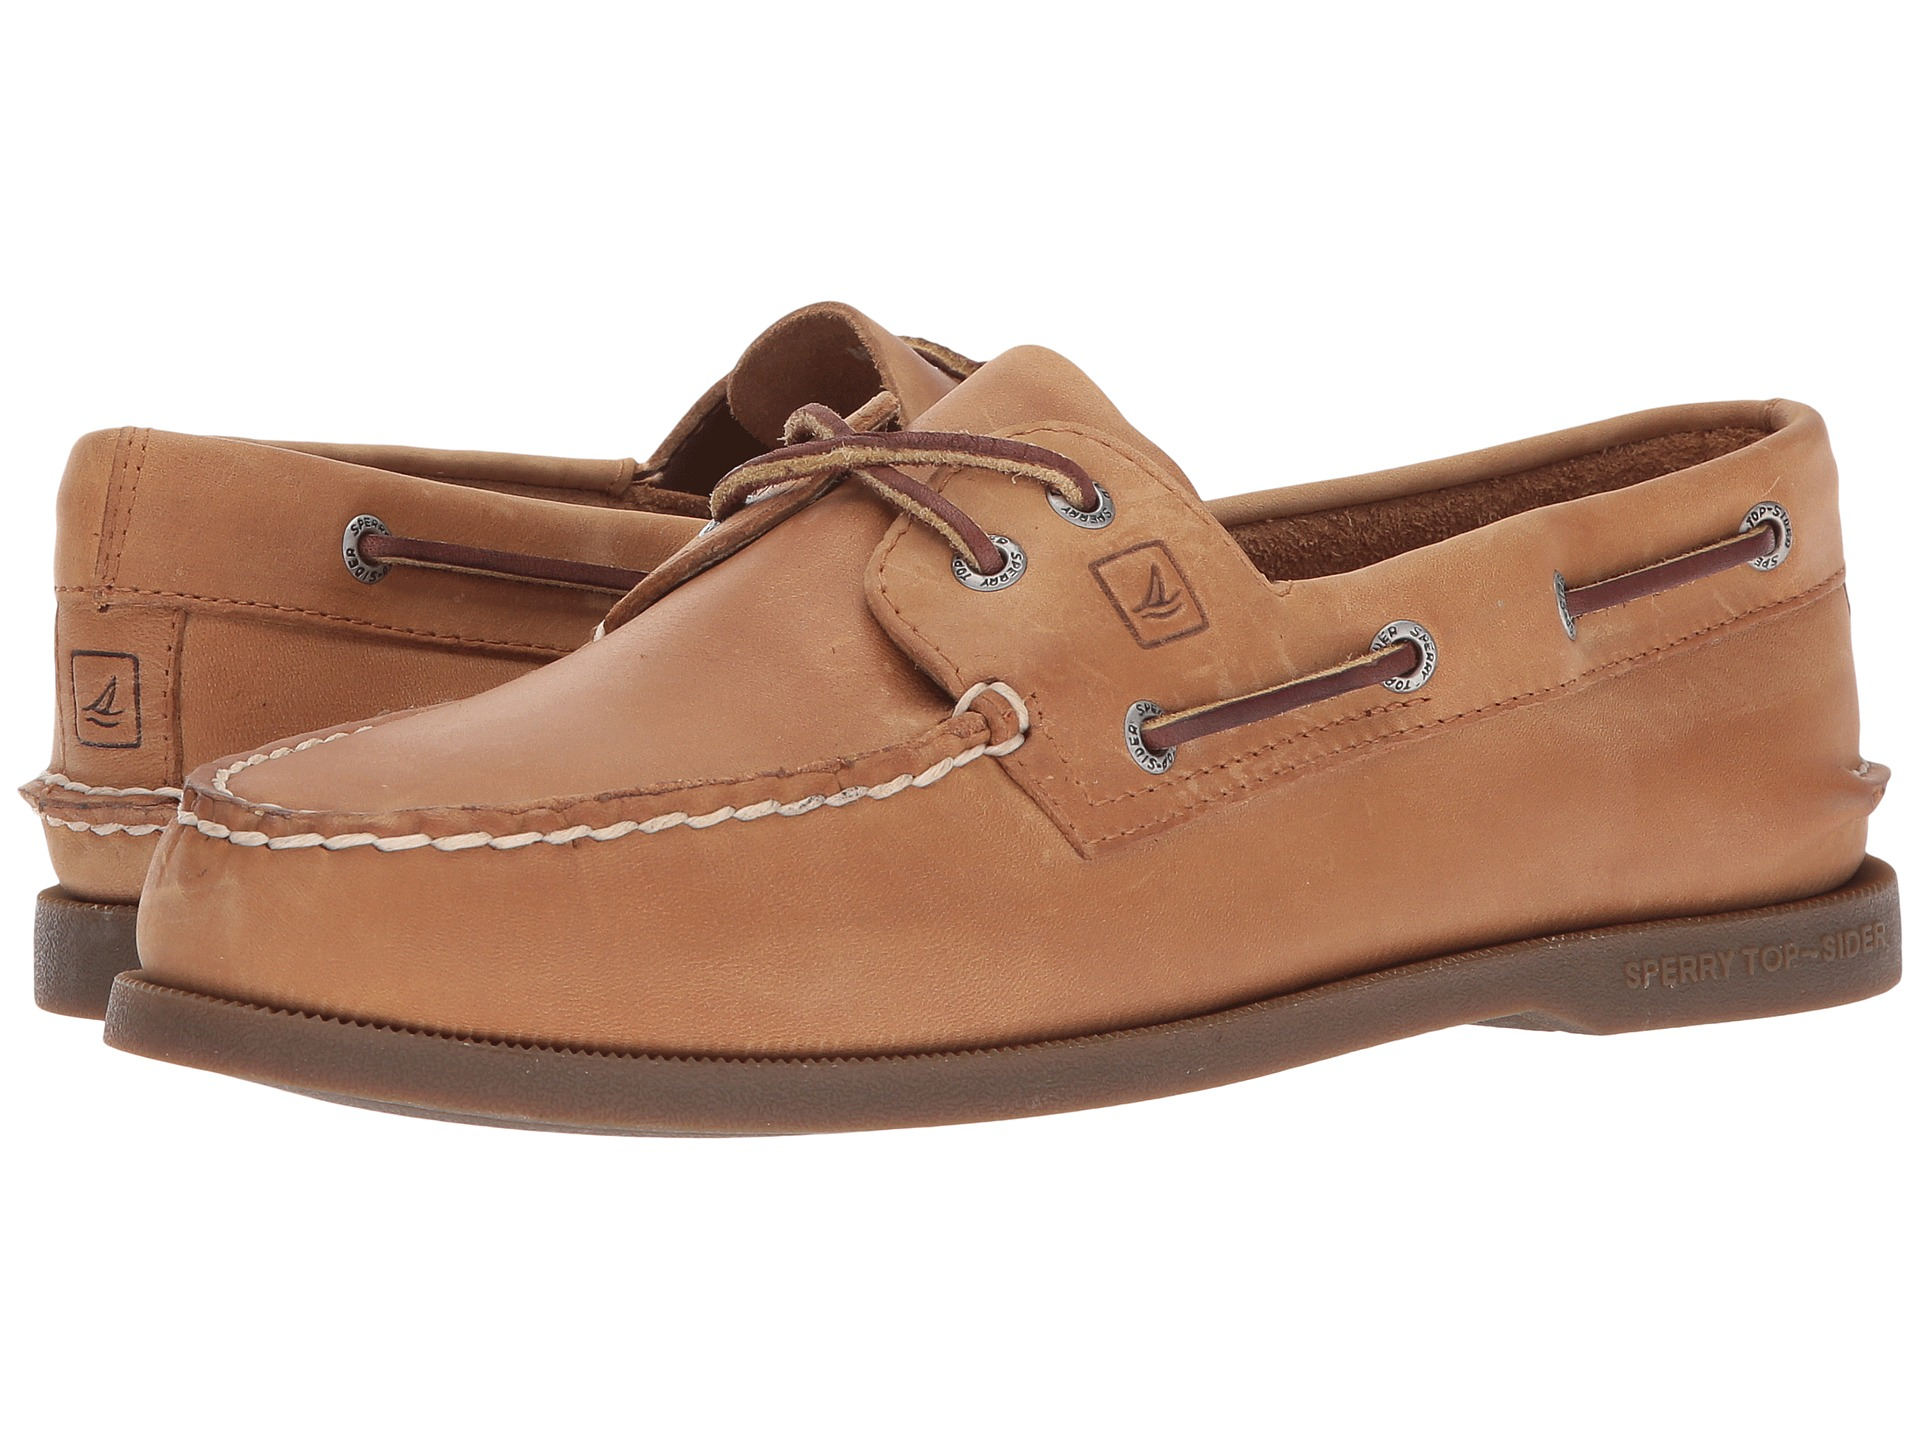 Sperry Authentic Original - Zappos.com Free Shipping BOTH Ways